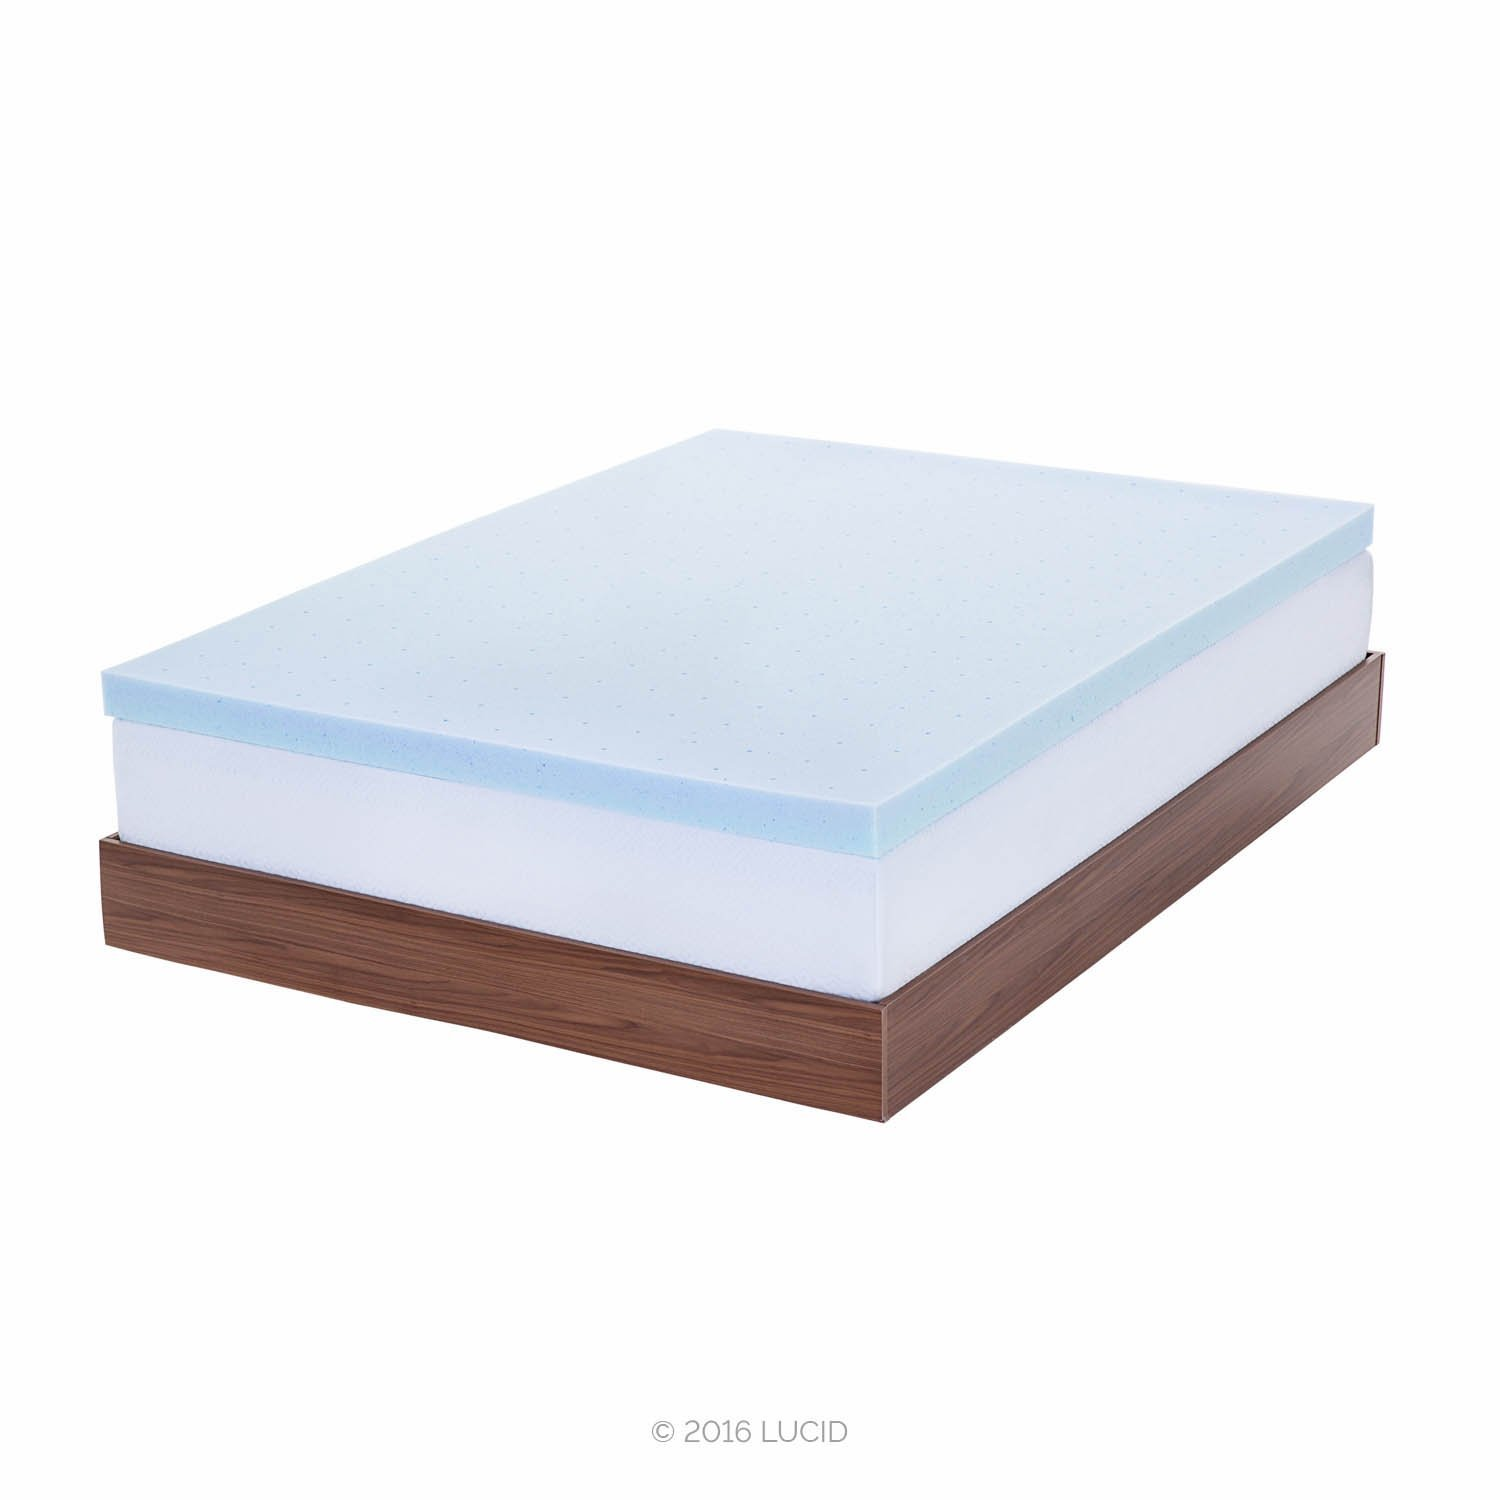 weighs balance to your mattresses between firmness what strike blog softness mattress cushioning for of a best hybrid offer needs cc more extra restonic sleeper thicker type the anyone body and than who is pounds